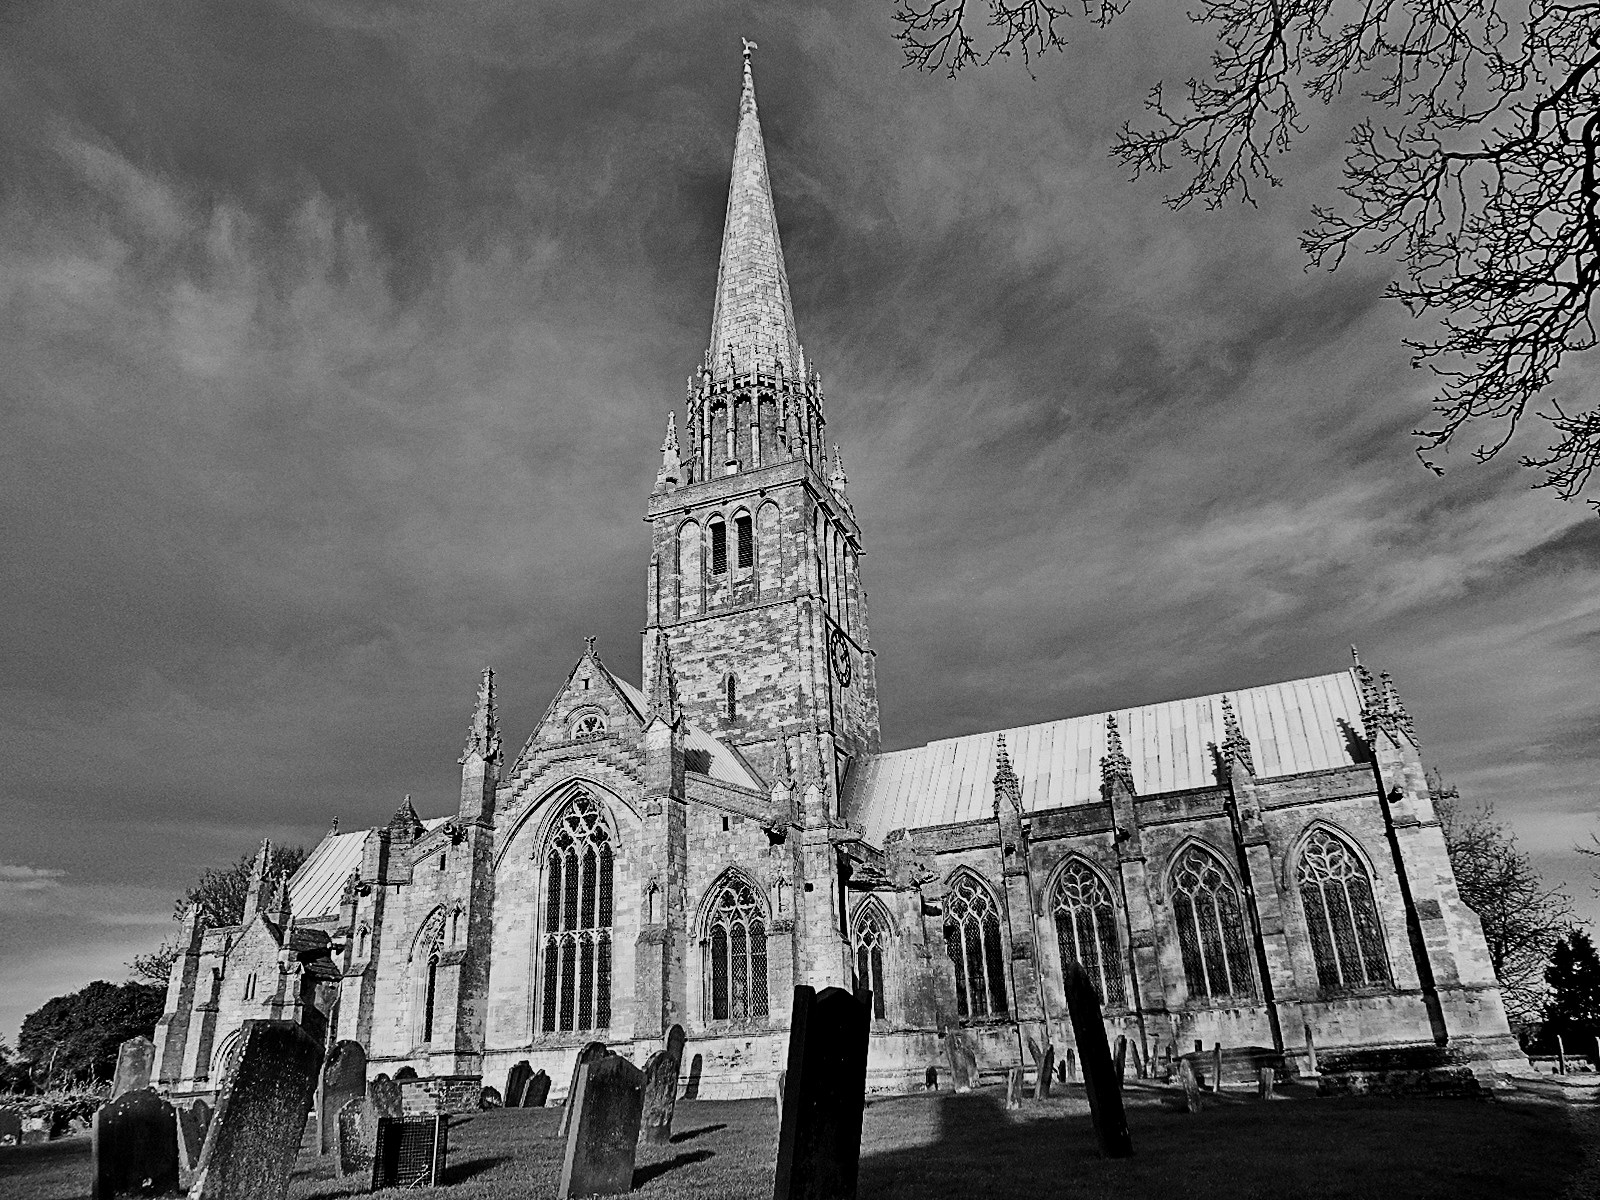 Second runner-up: Lynn Doe, St Patrick's Church, Patrington